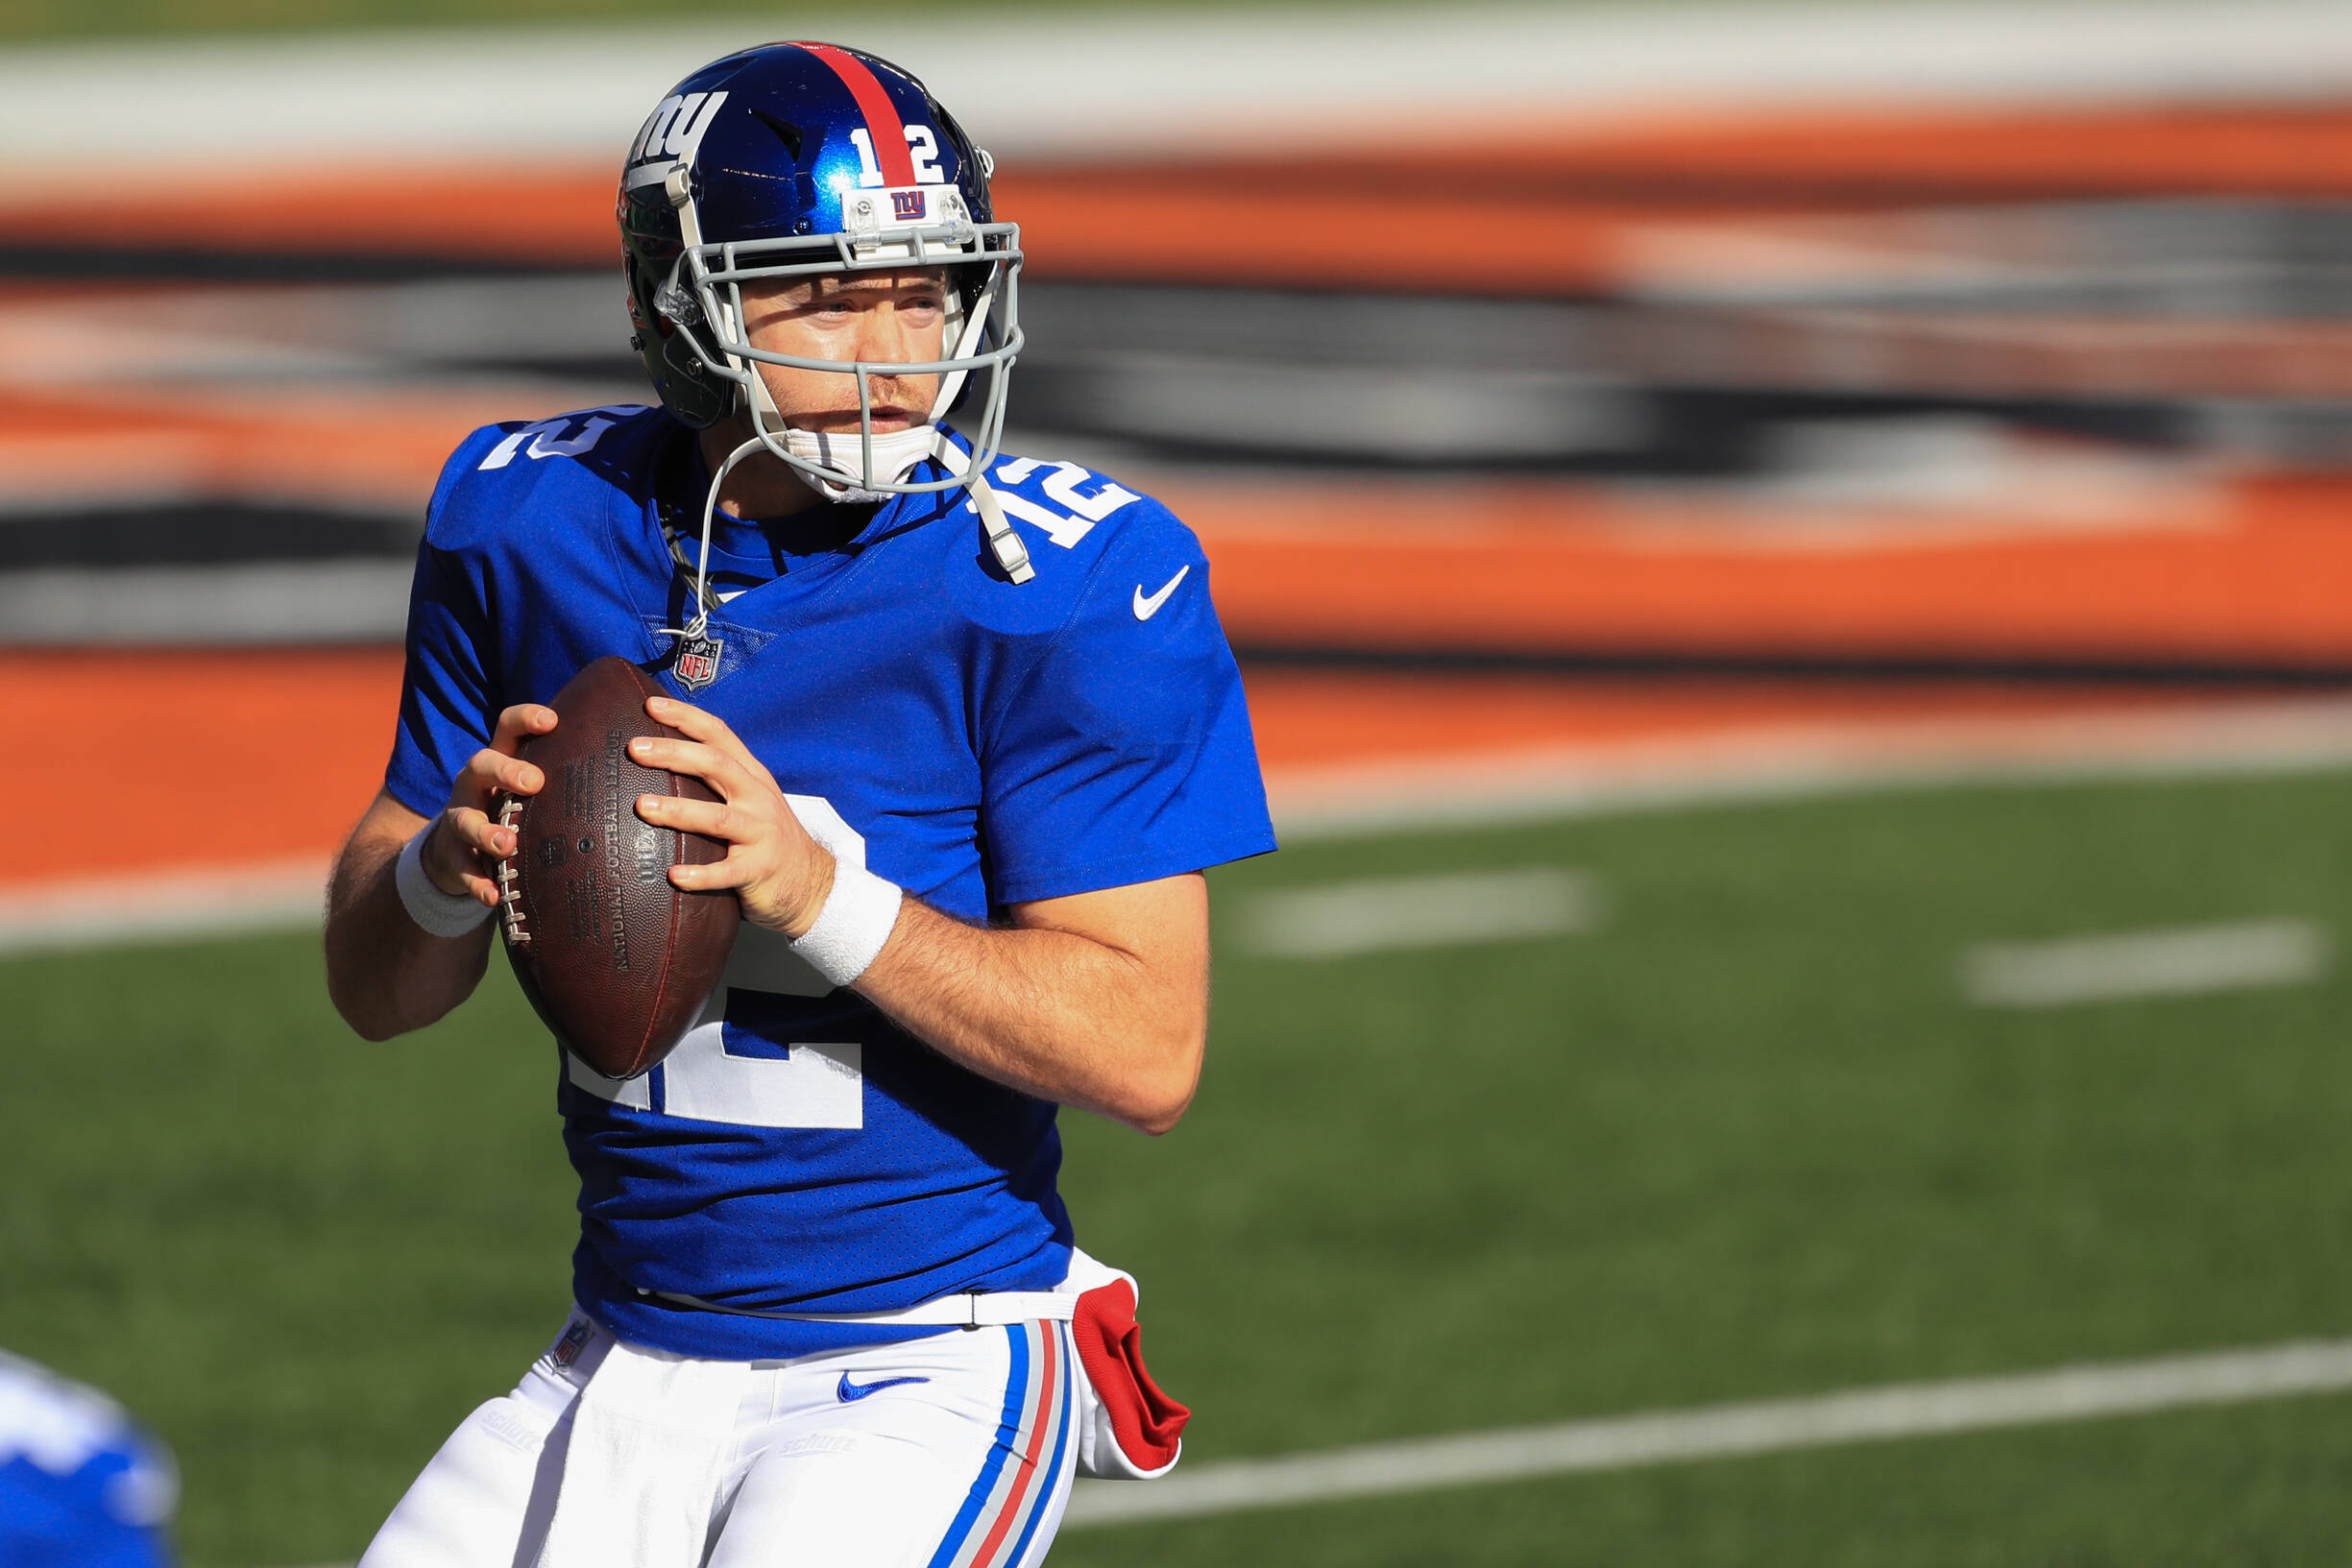 CINCINNATI, OH - NOVEMBER 29: New York Giants quarterback Colt McCoy (12) warms up before the game against the New York